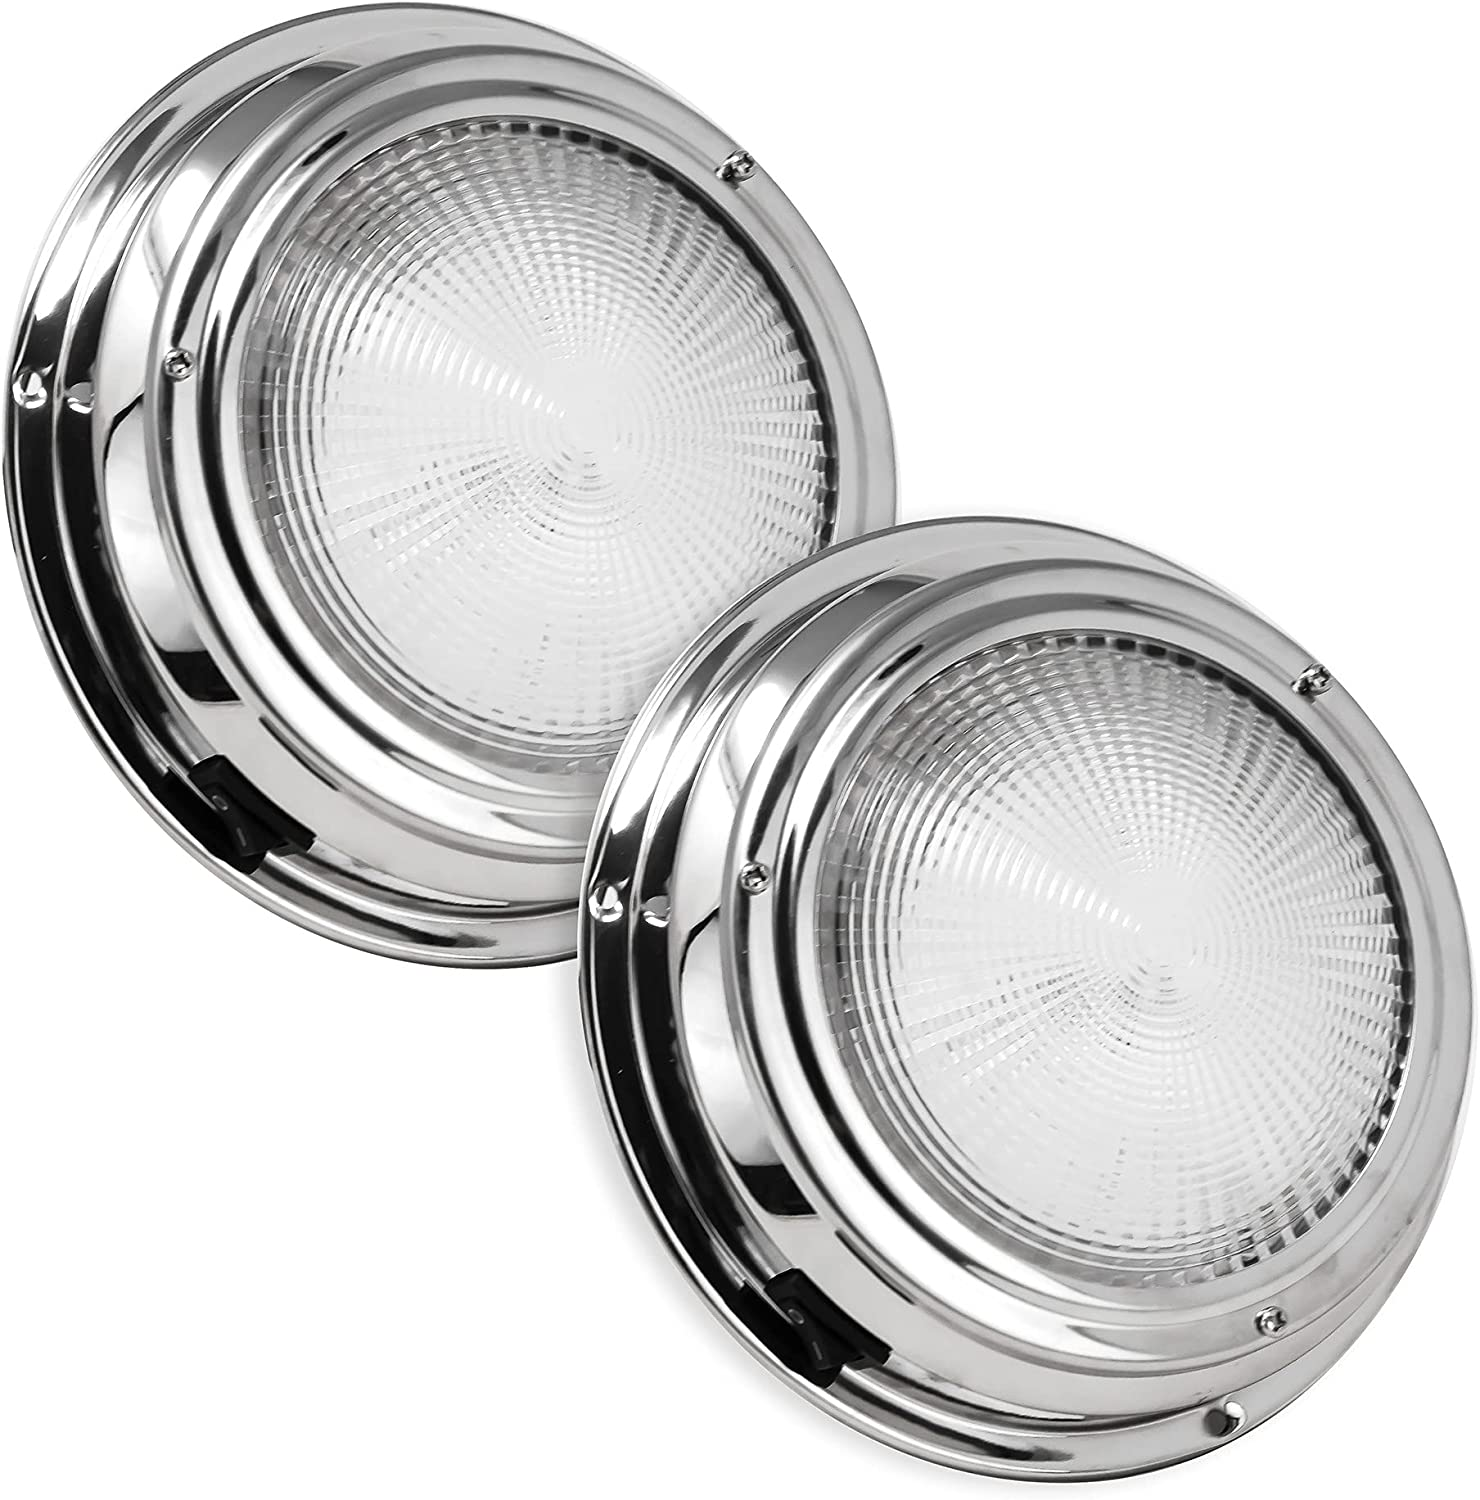 Five Oceans Marine, Boat, RV, Motorhome, Camper, Caravan, Trailer, Cool White LED Dome Light with ON-Off Switch, Polished Stainless Steel, 20 LED Pieces, FO-2625 : Boating Interior Lights : Sports & Outdoors